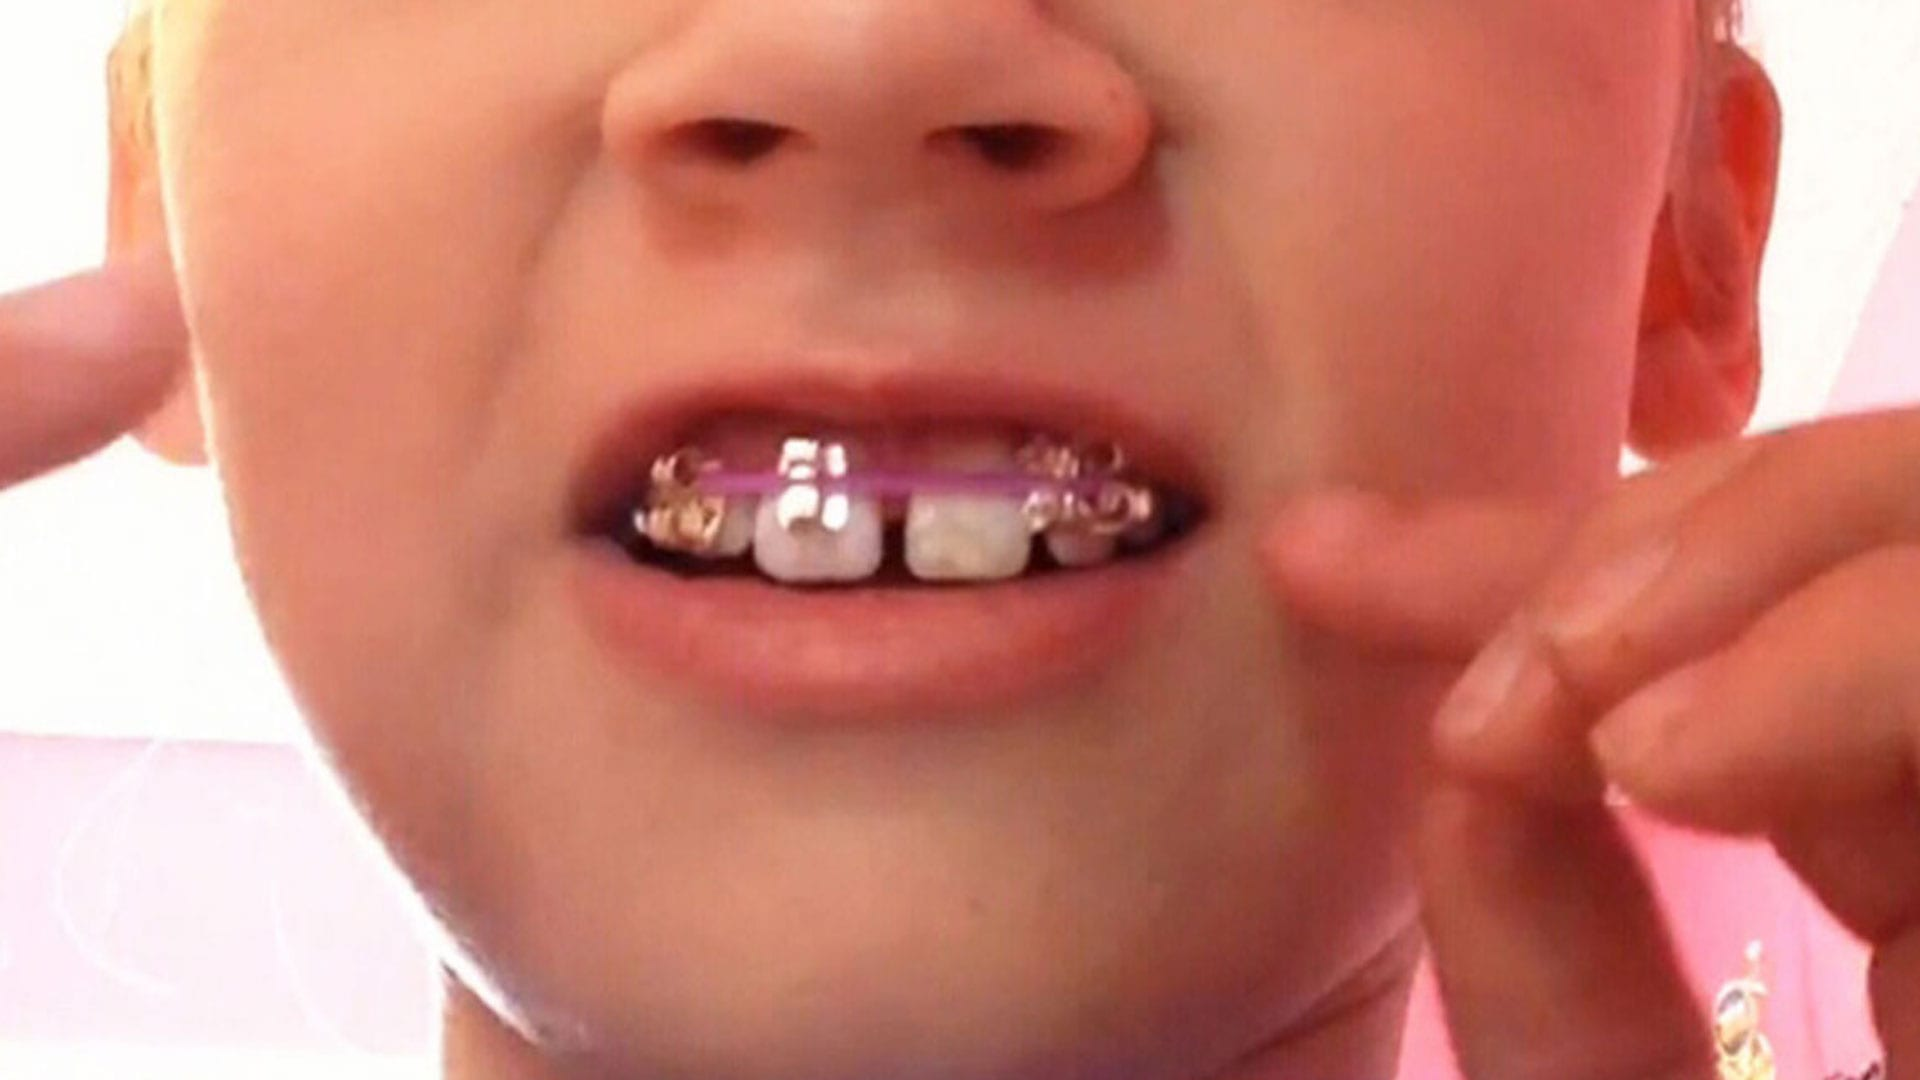 Child playing with DIY braces